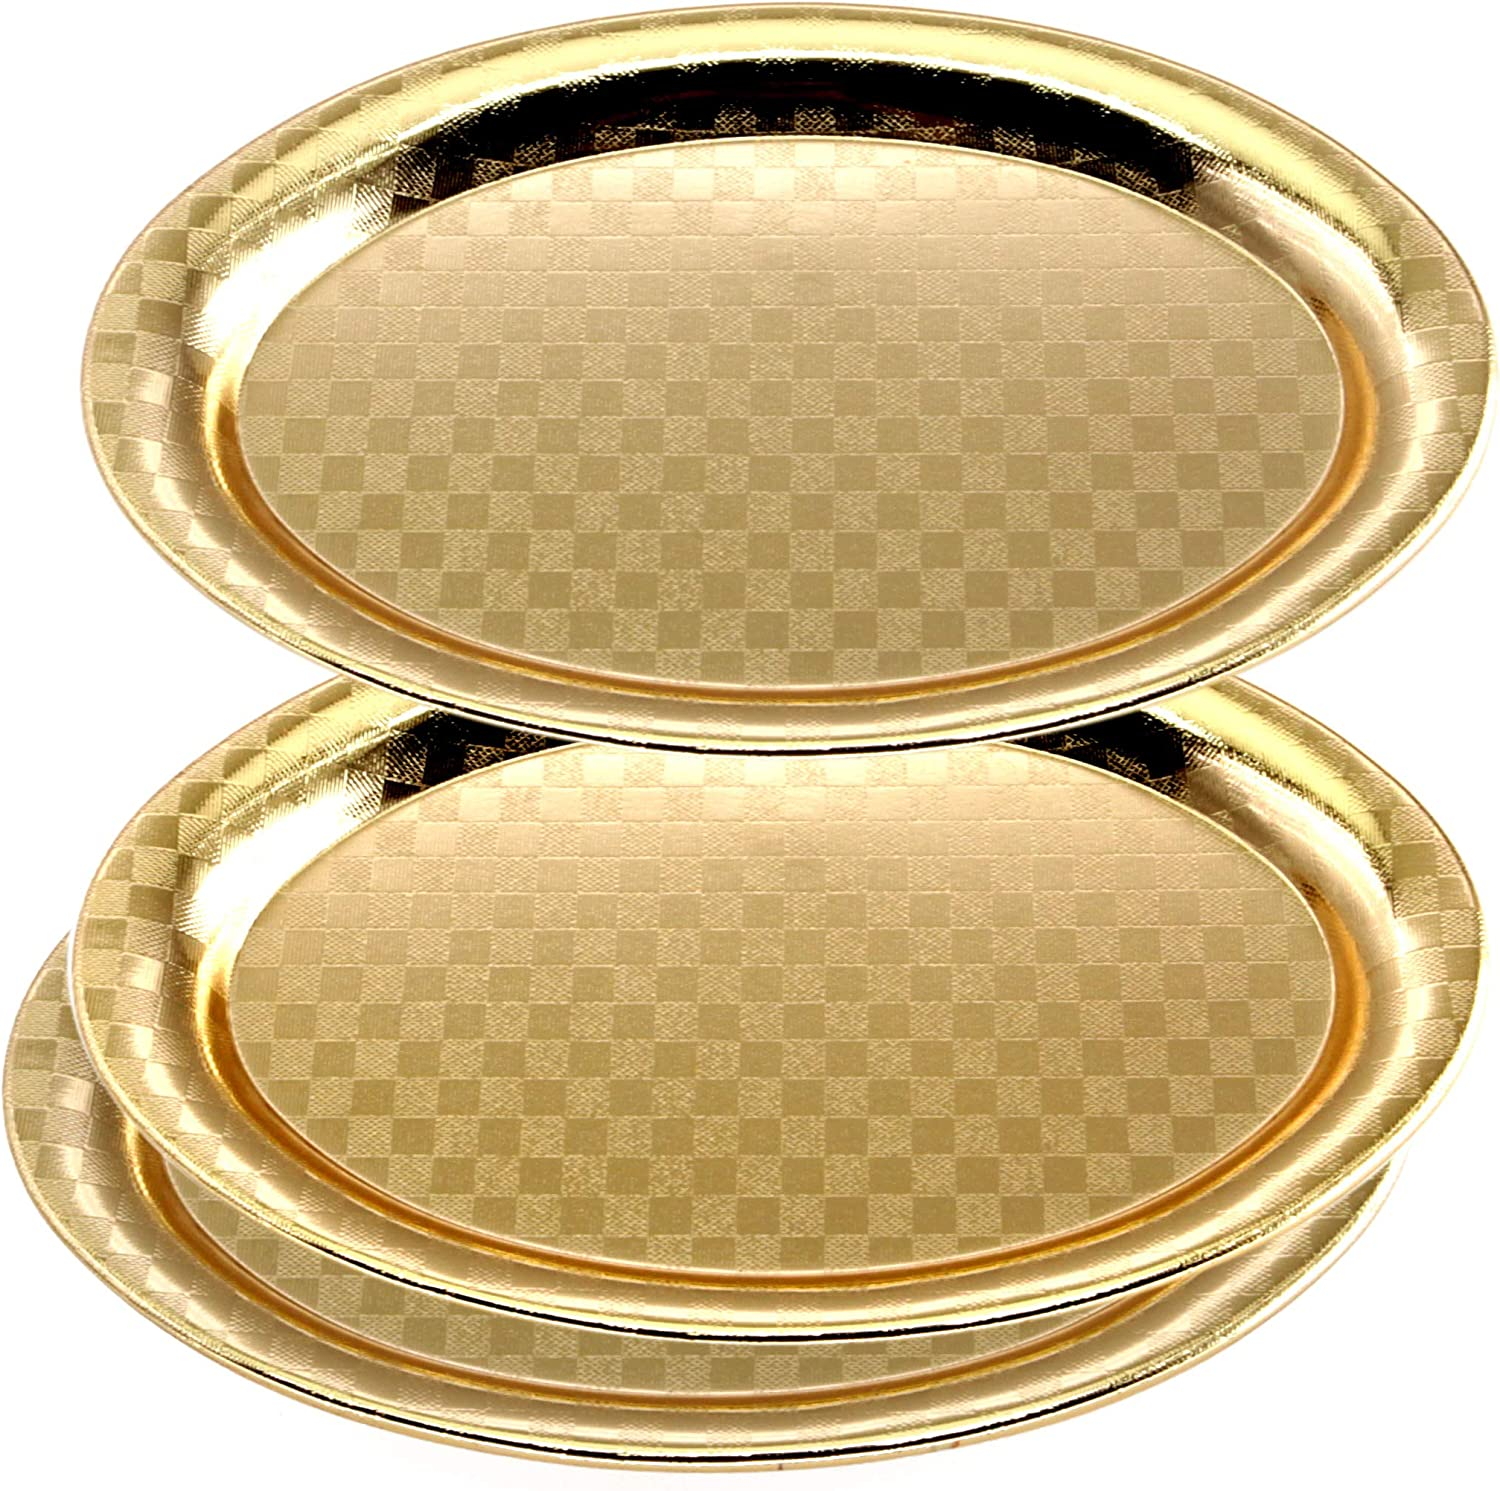 Maro Megastore (Pack of 3) 7.9 Inch x 5.6 Inch Oval Iron Gold Plated Serving Tray Bricks Square Edge Decorative Party Birthday Wedding Dessert Buffet Wine Candle Decor Platter Plate Dish CC-683